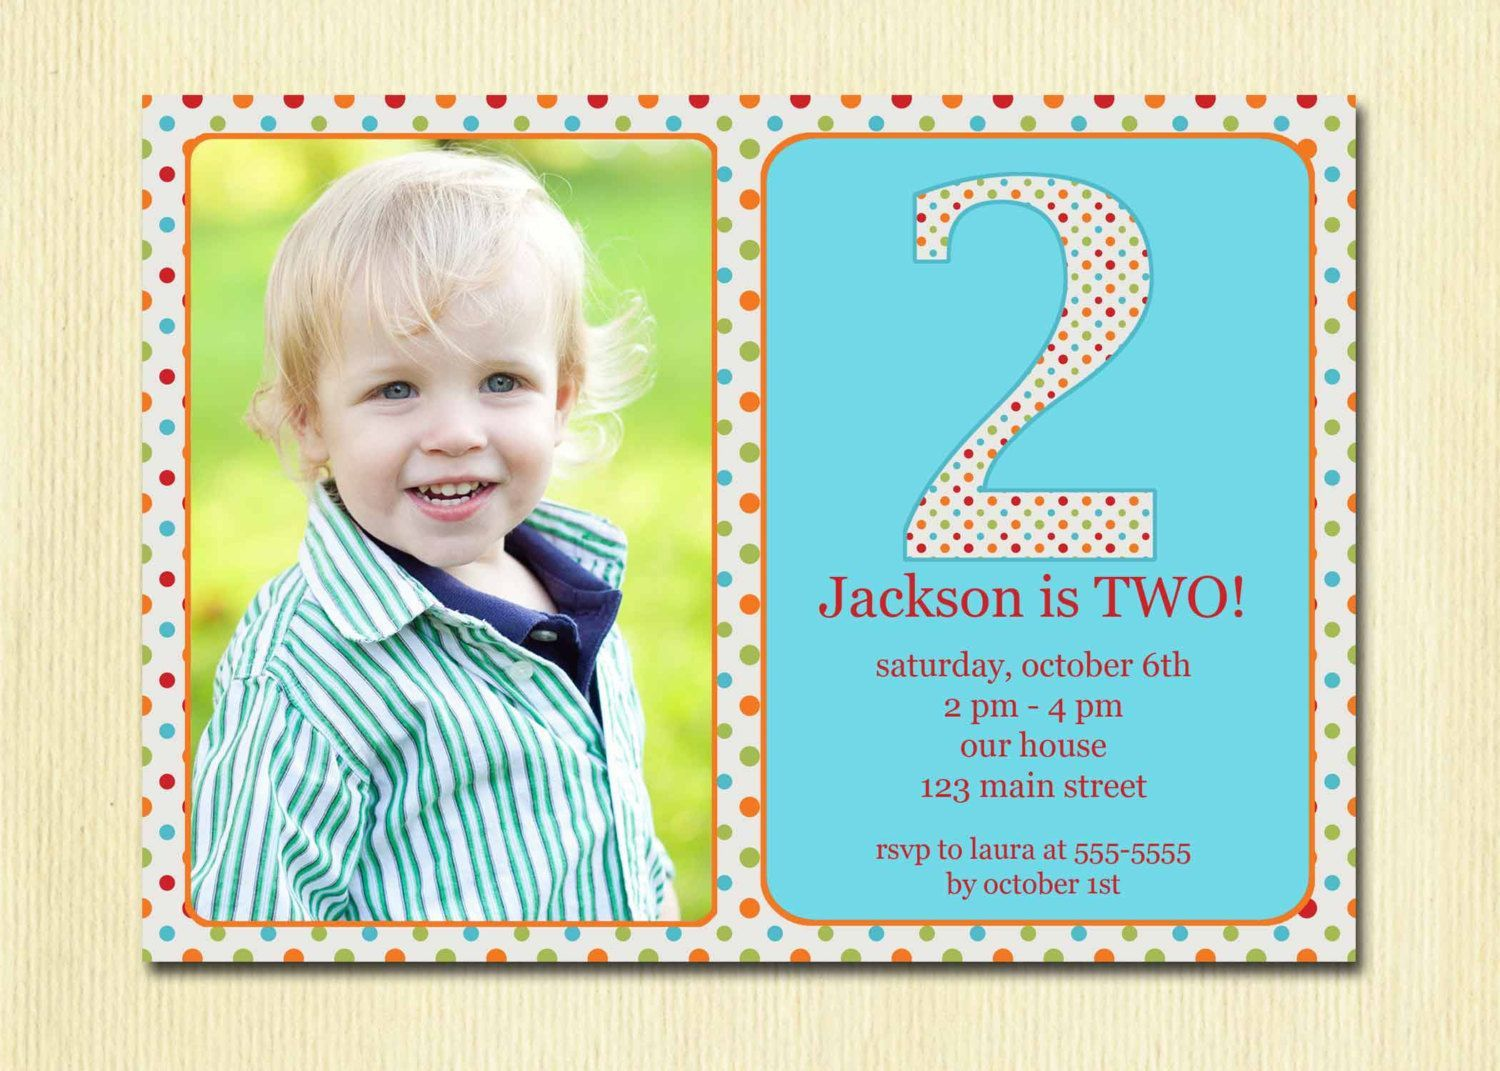 005 Striking Birthday Invitation Wording Sample 5 Year Old Concept Full